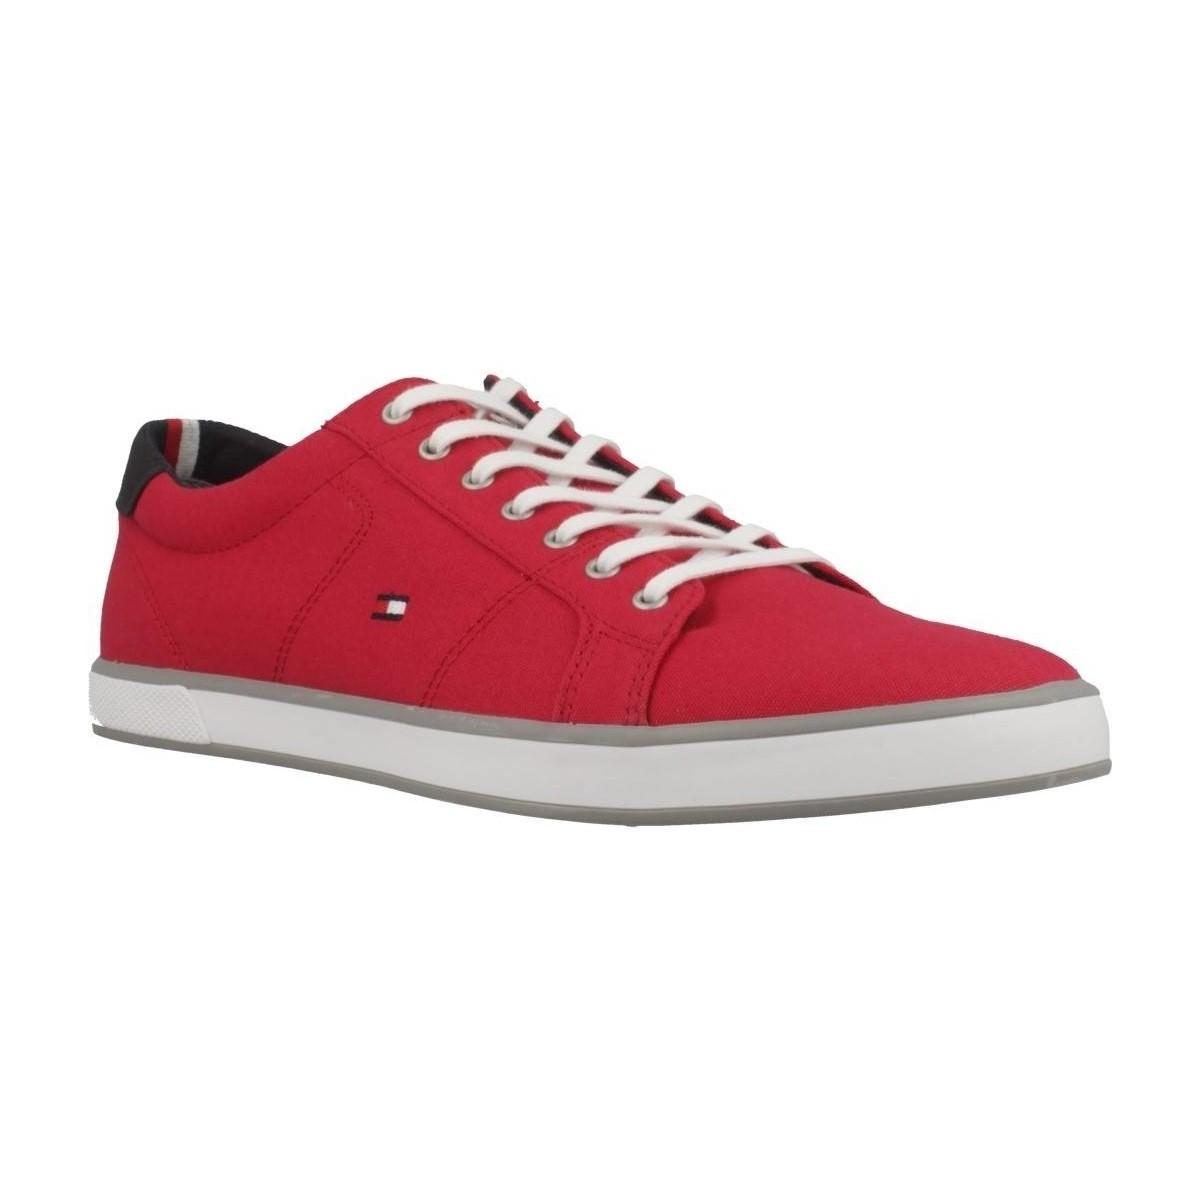 f7196a5361ff Tommy Hilfiger 78082 Women s Shoes (trainers) In Red in Red - Lyst